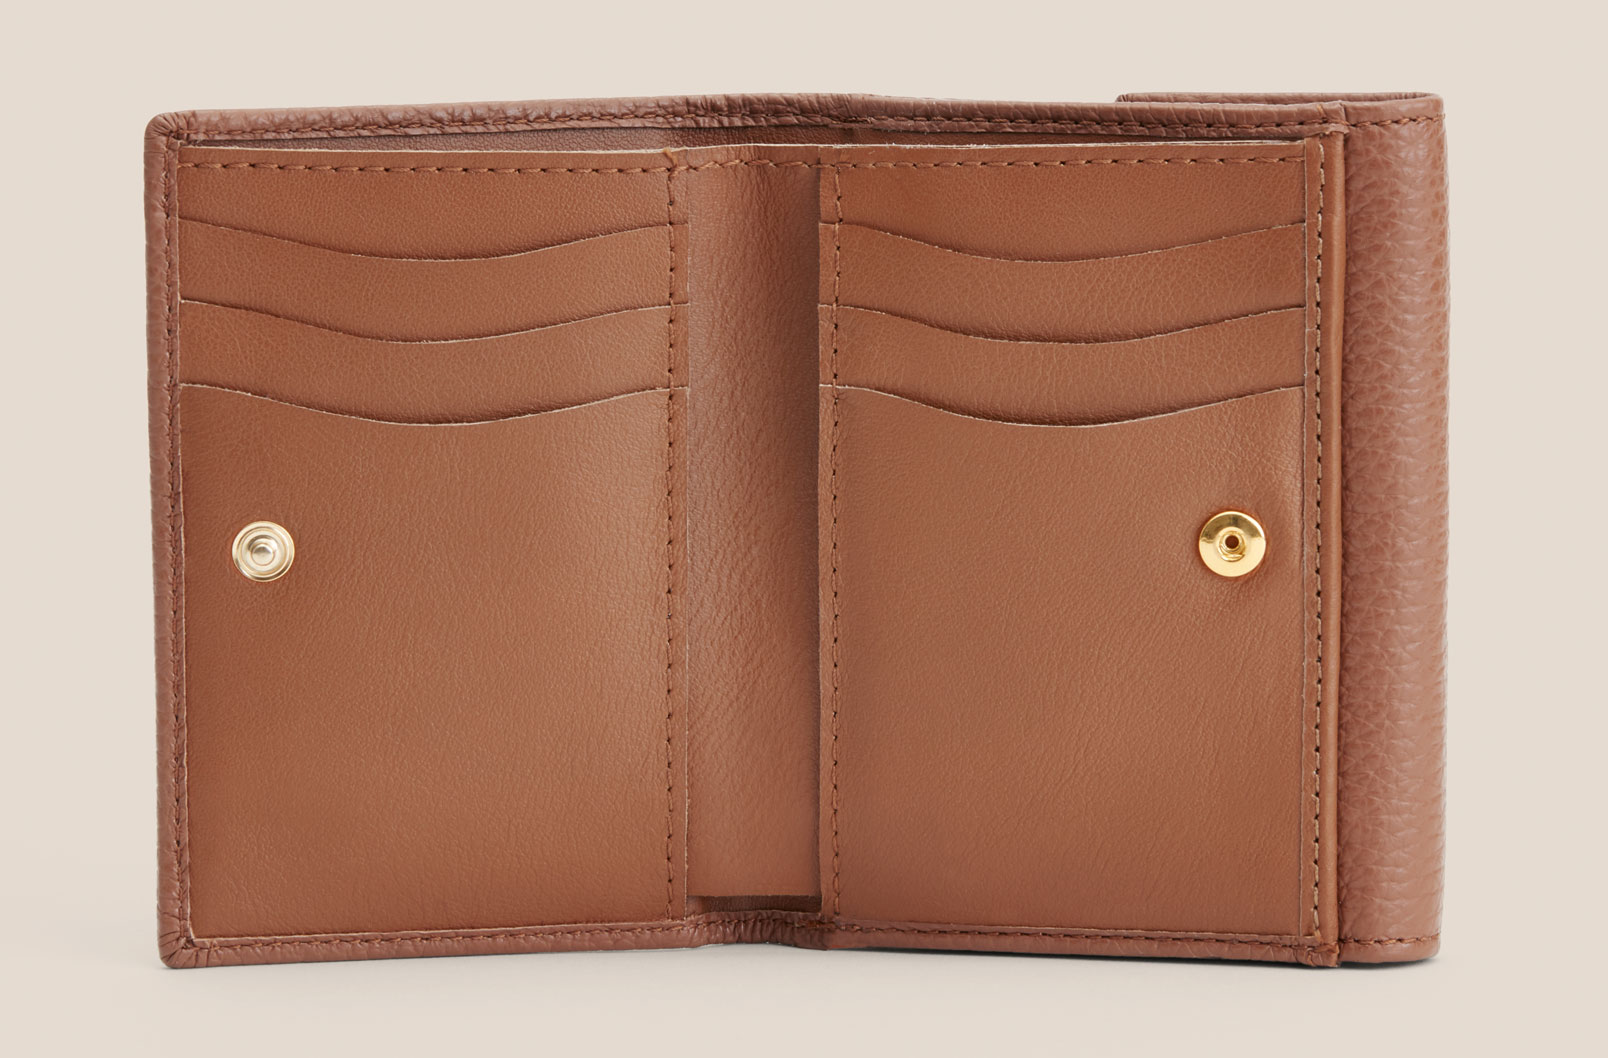 Classic Small Flap Wallet interior shot with card slots, bill slot, and coin holder